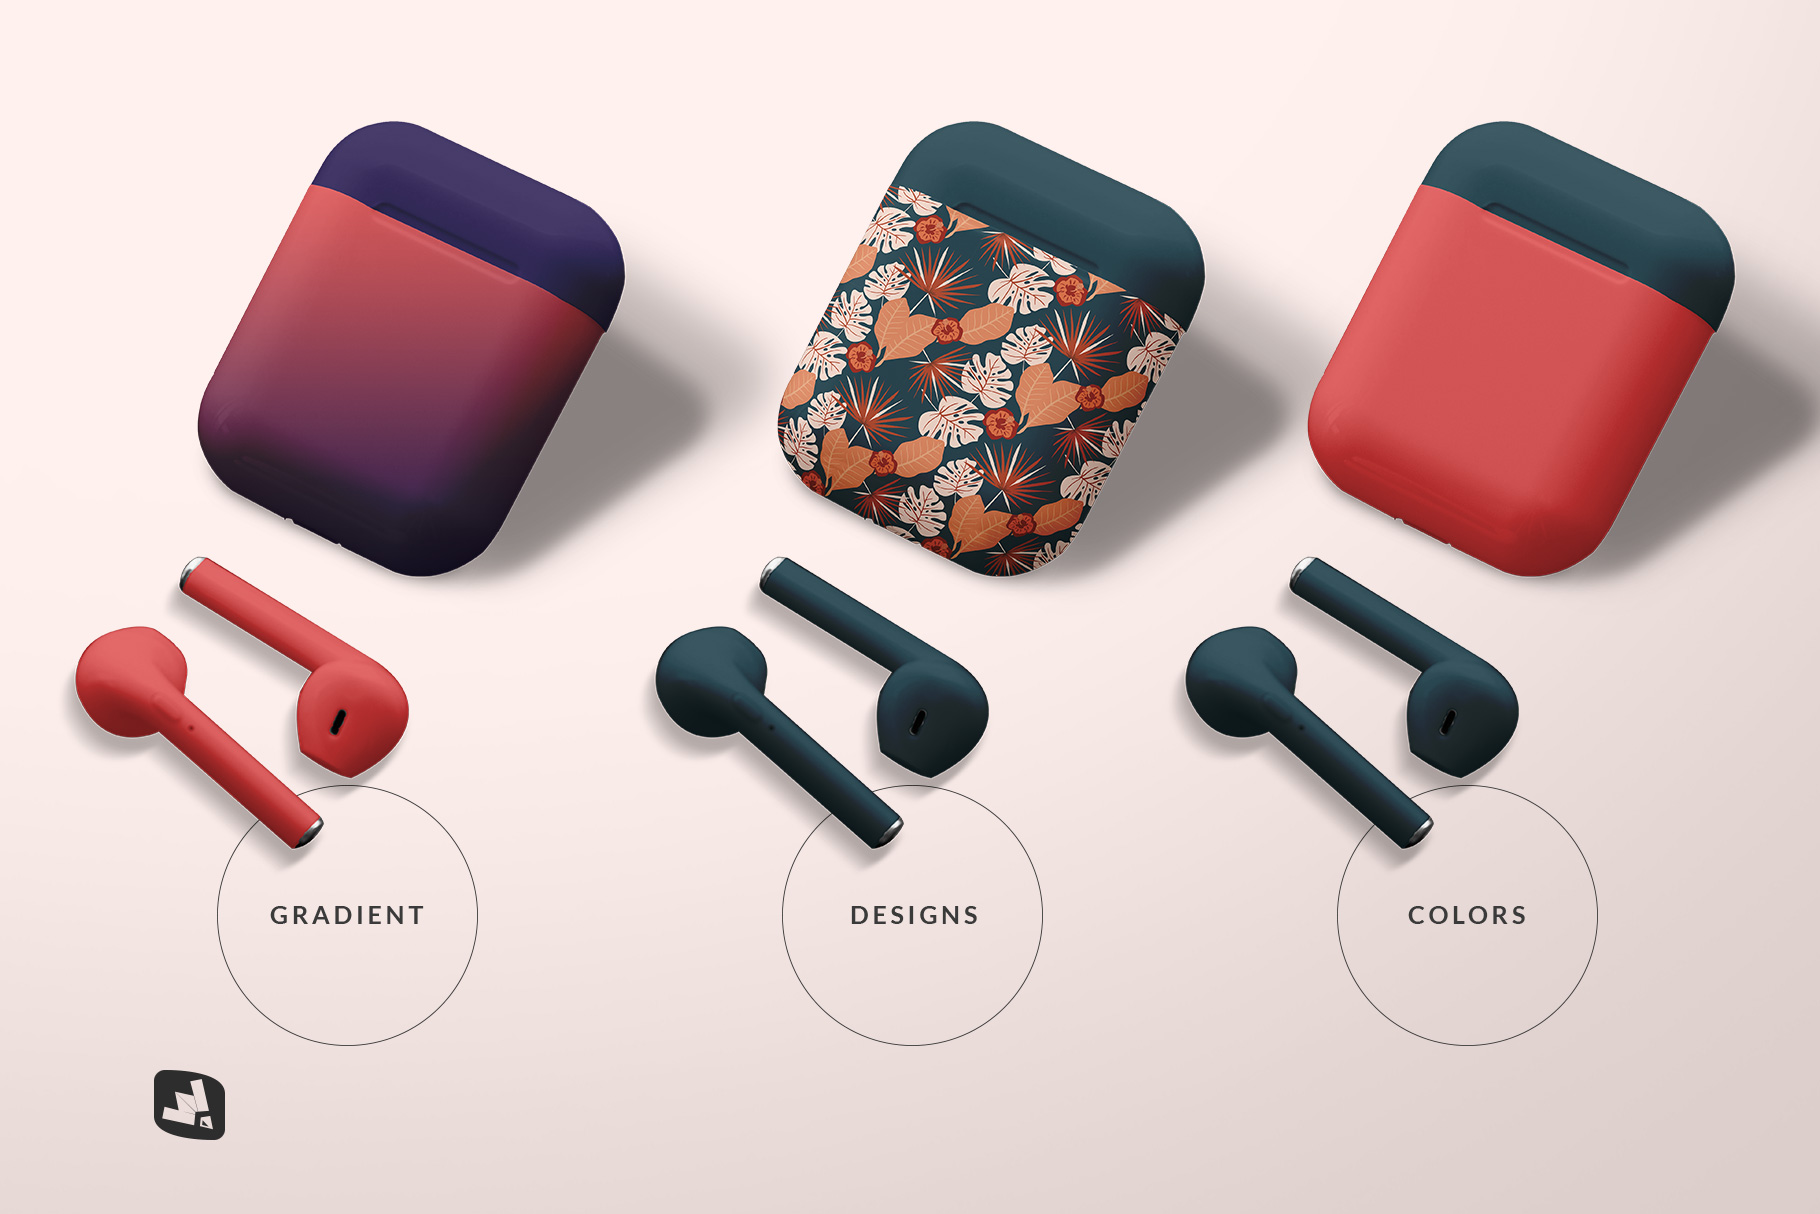 types of the airpod case mockup